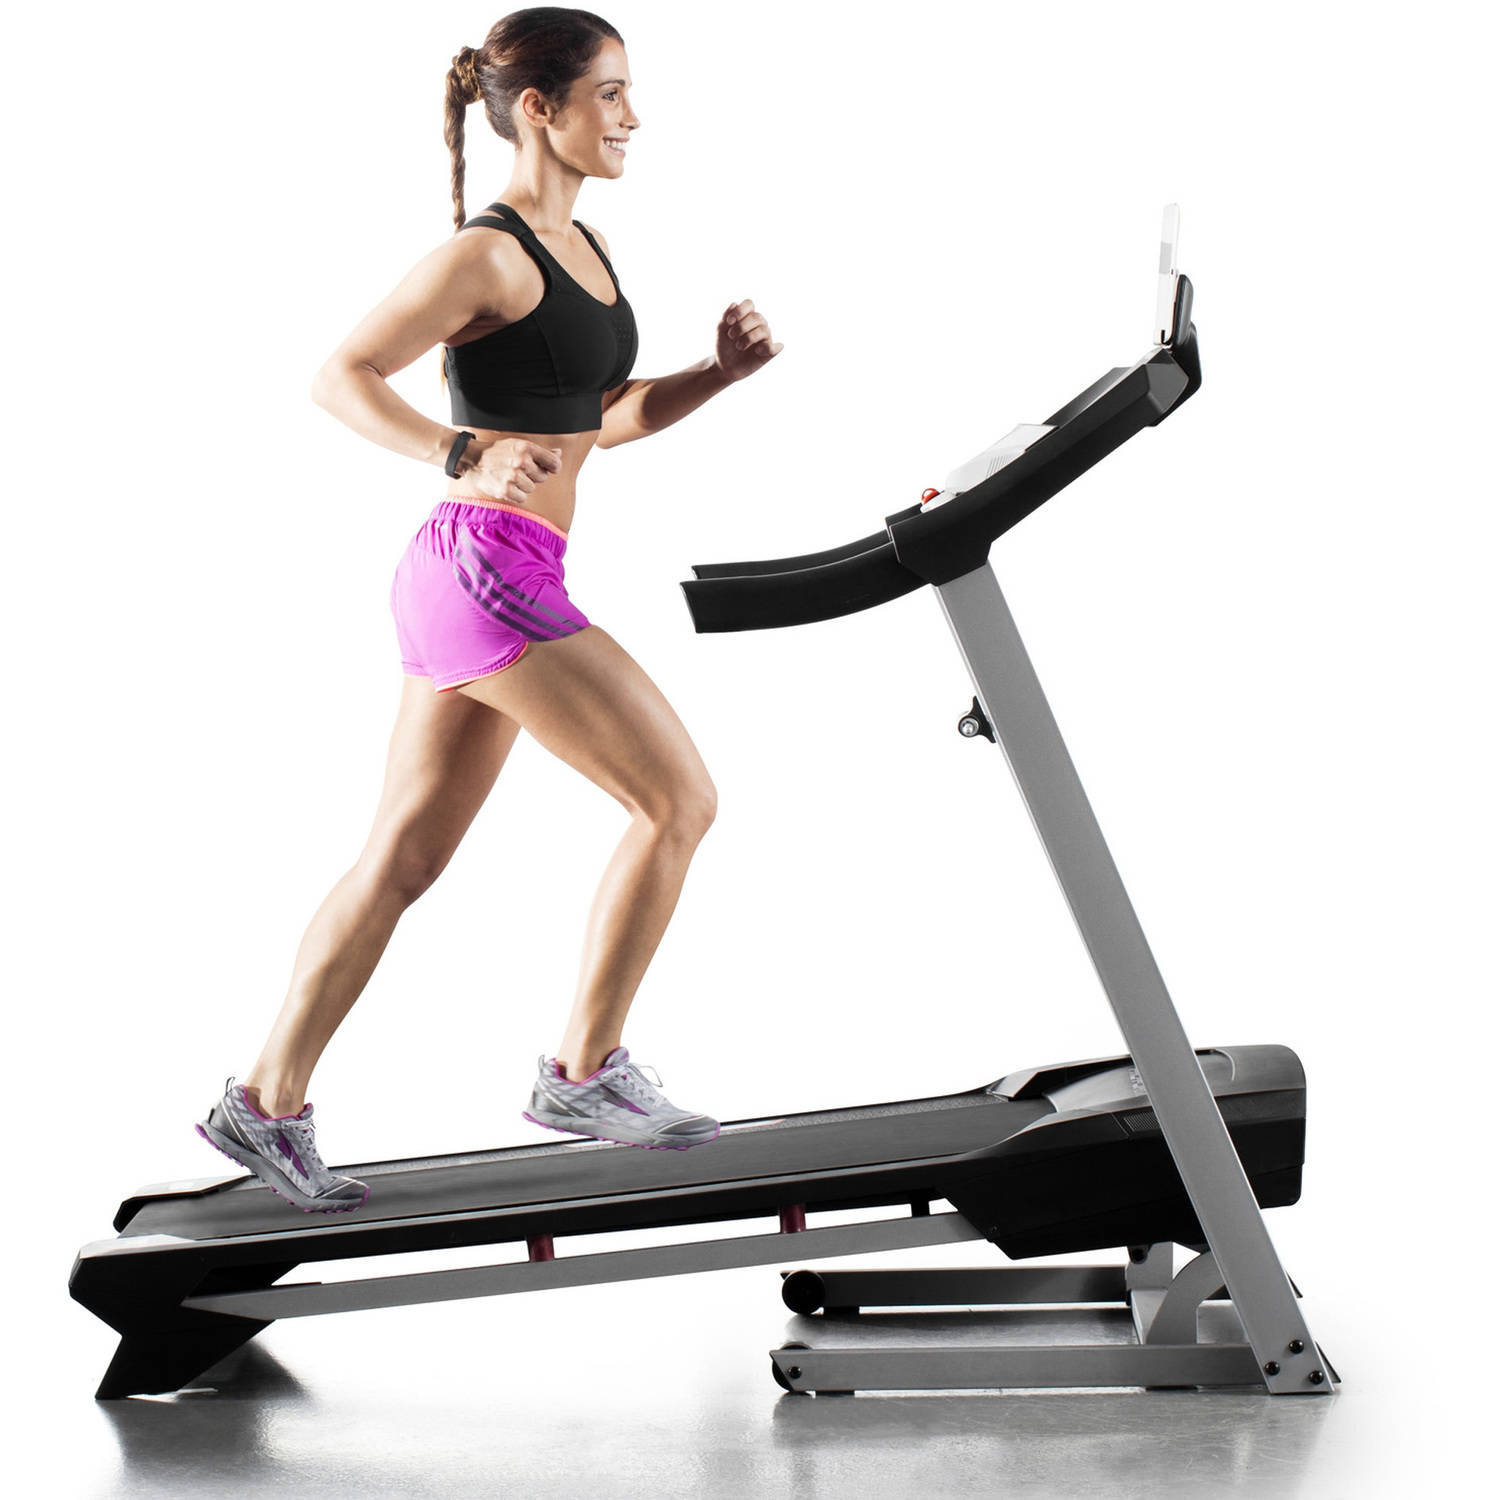 Folding Treadmill For Home Exercise Fitness Jogging